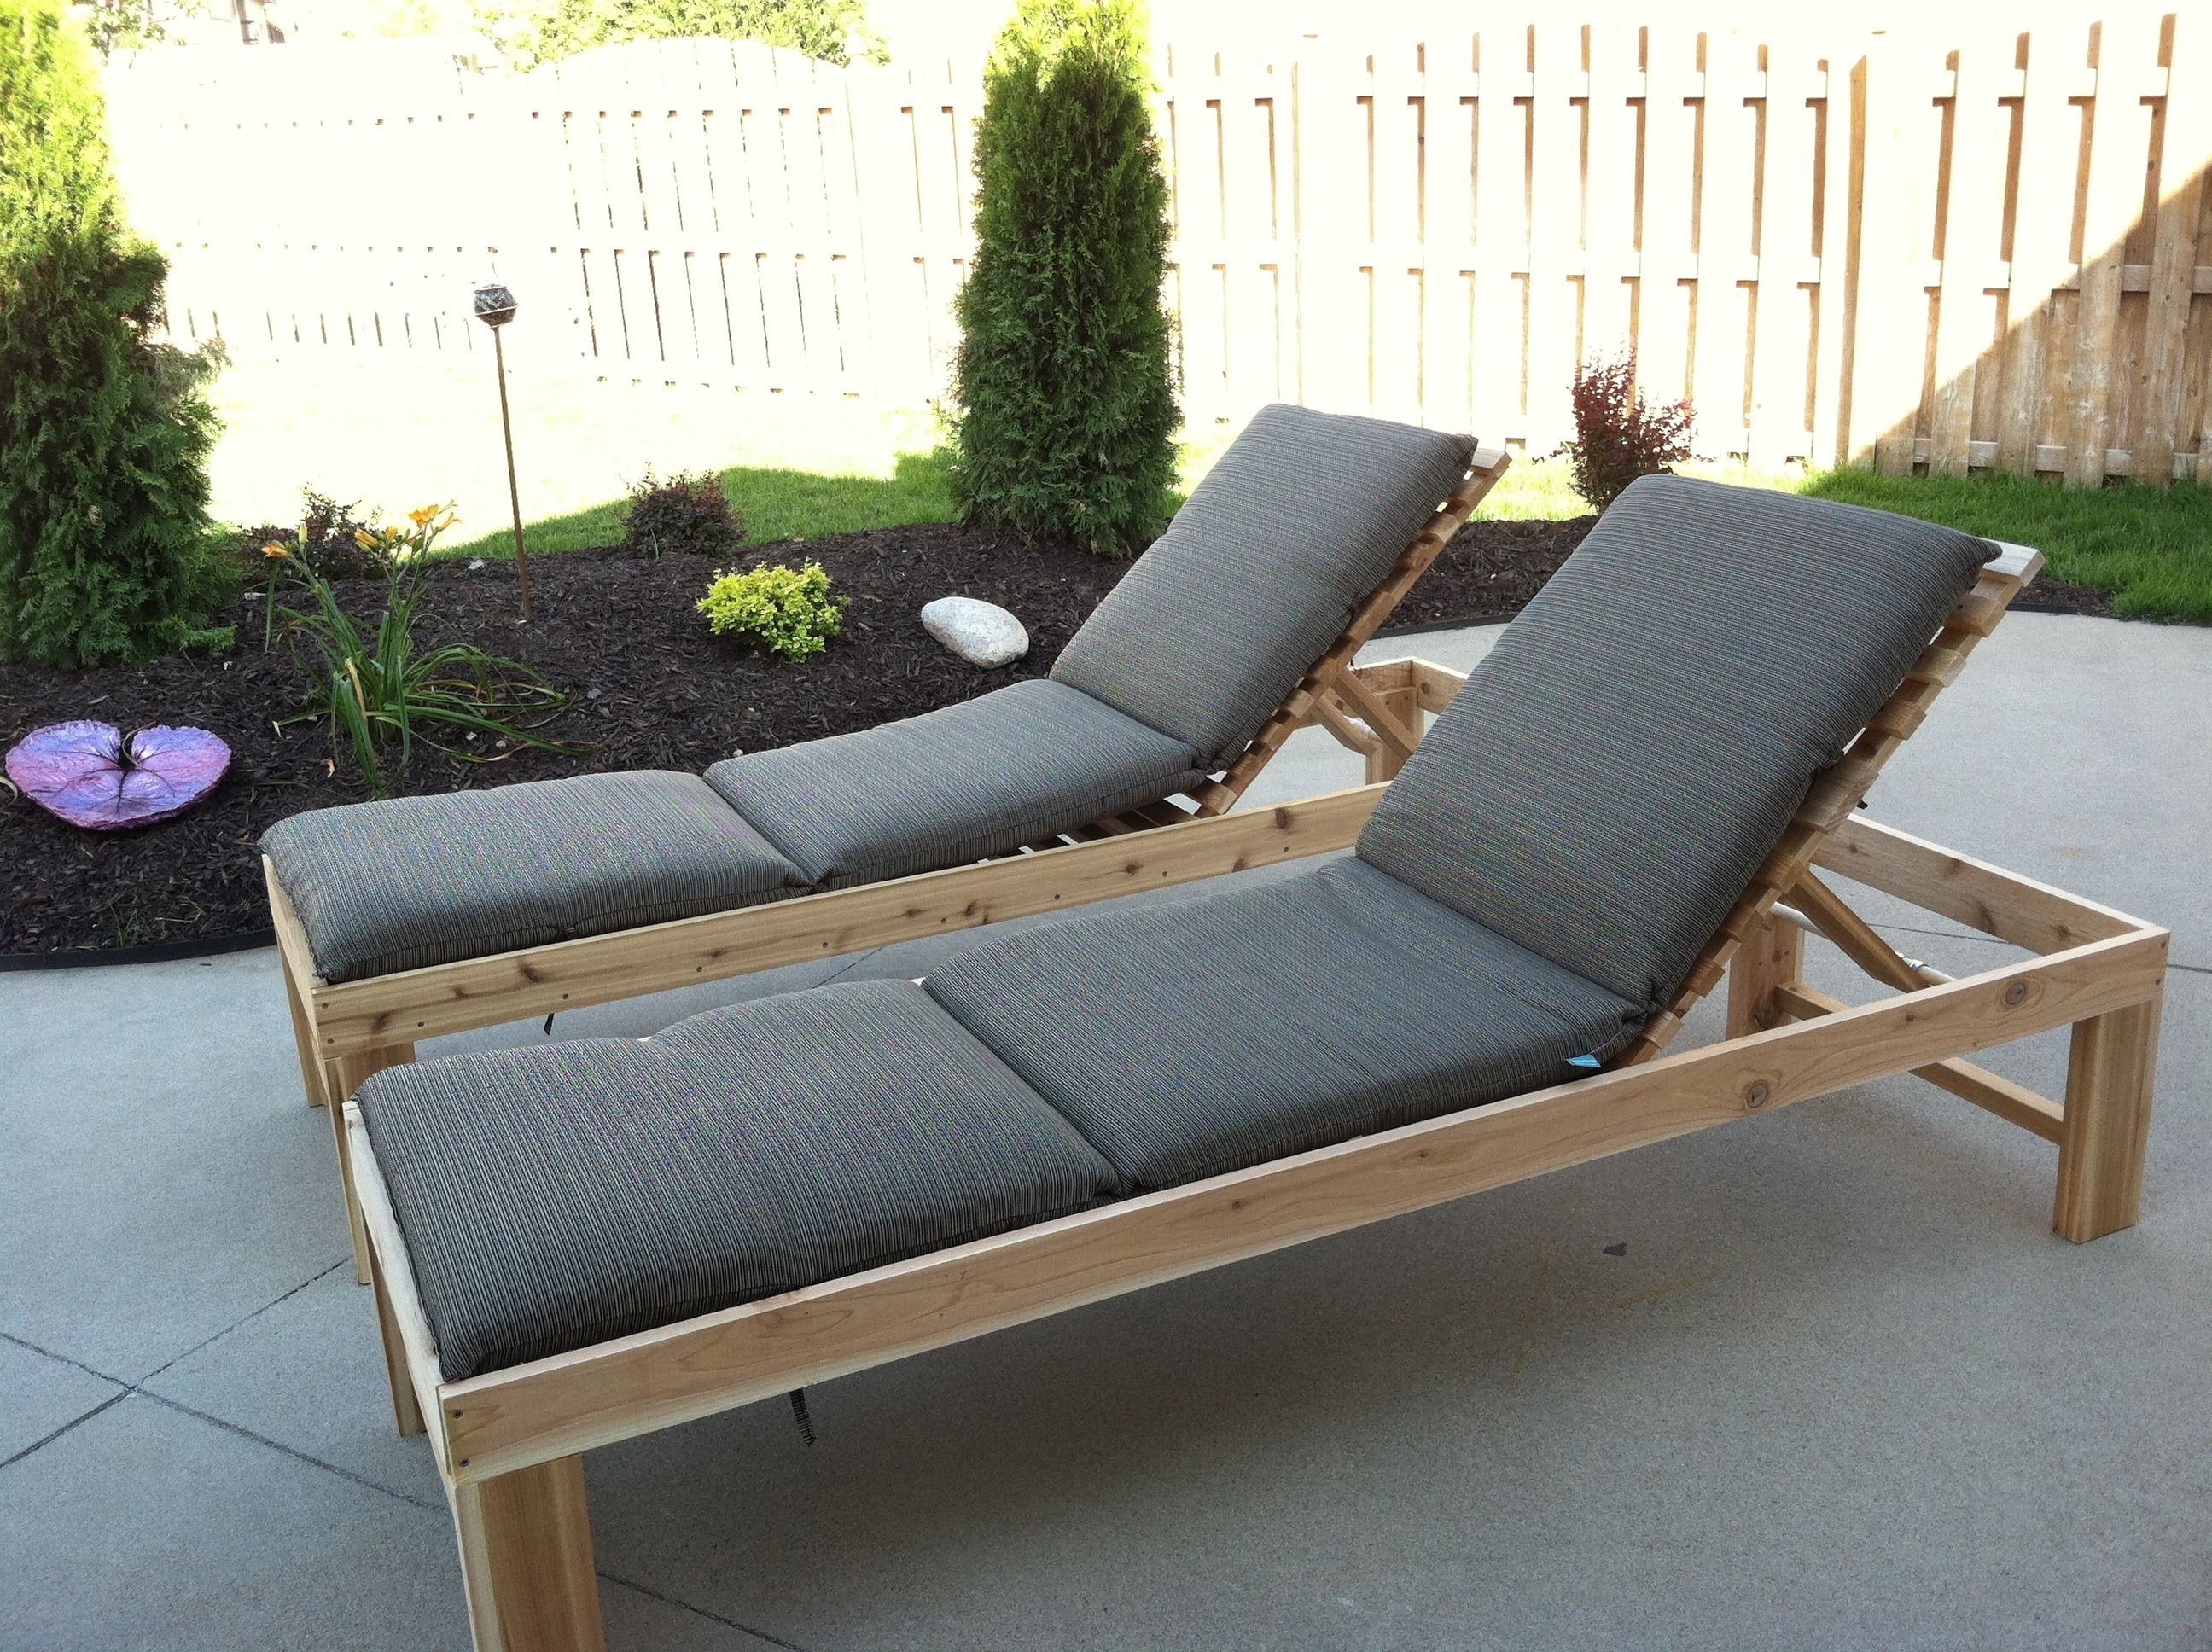 Outdoor Chaise Lounge – Diy Projects Within White Outdoor Chaise Lounges (View 15 of 15)